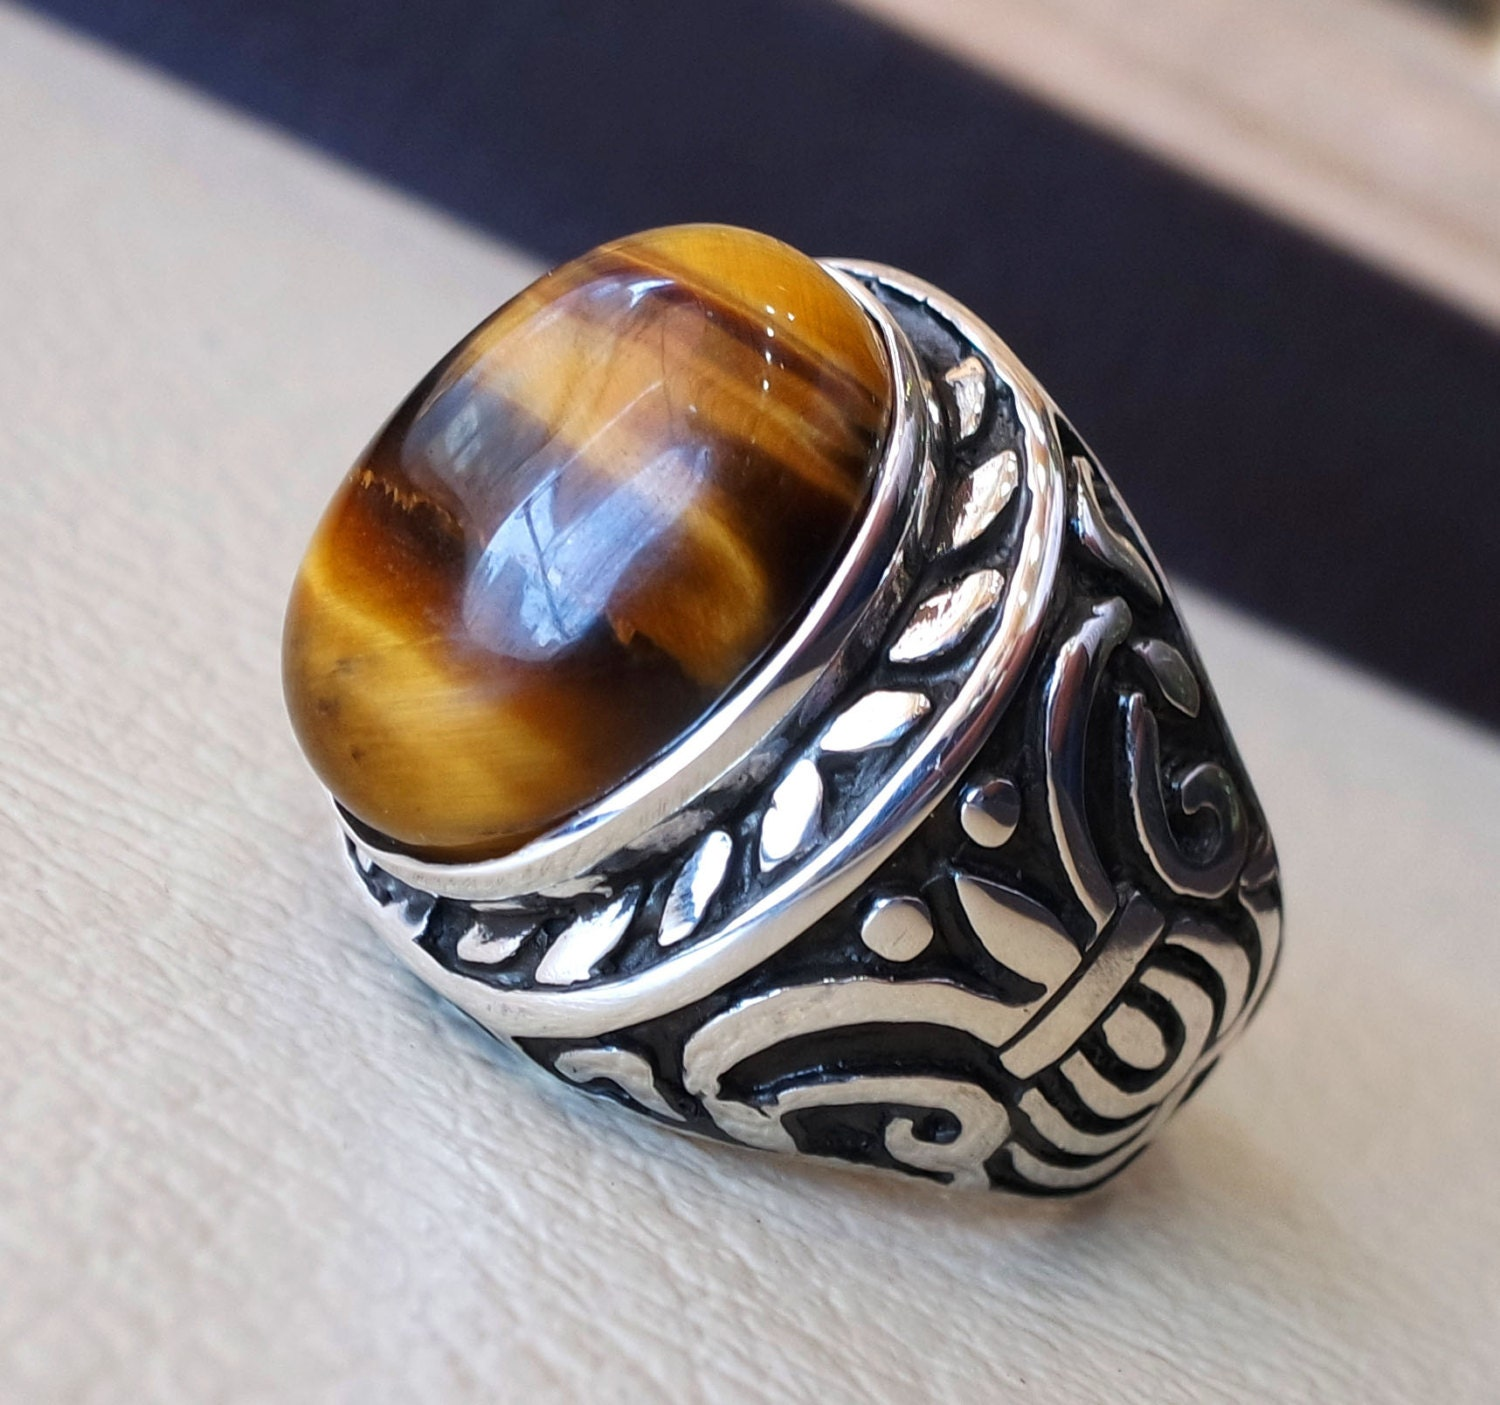 collections cameo grecian rings yellow mens men s tiger eye sohojewelers antique vintage gold warrior retro jewelry estate ring tigers com